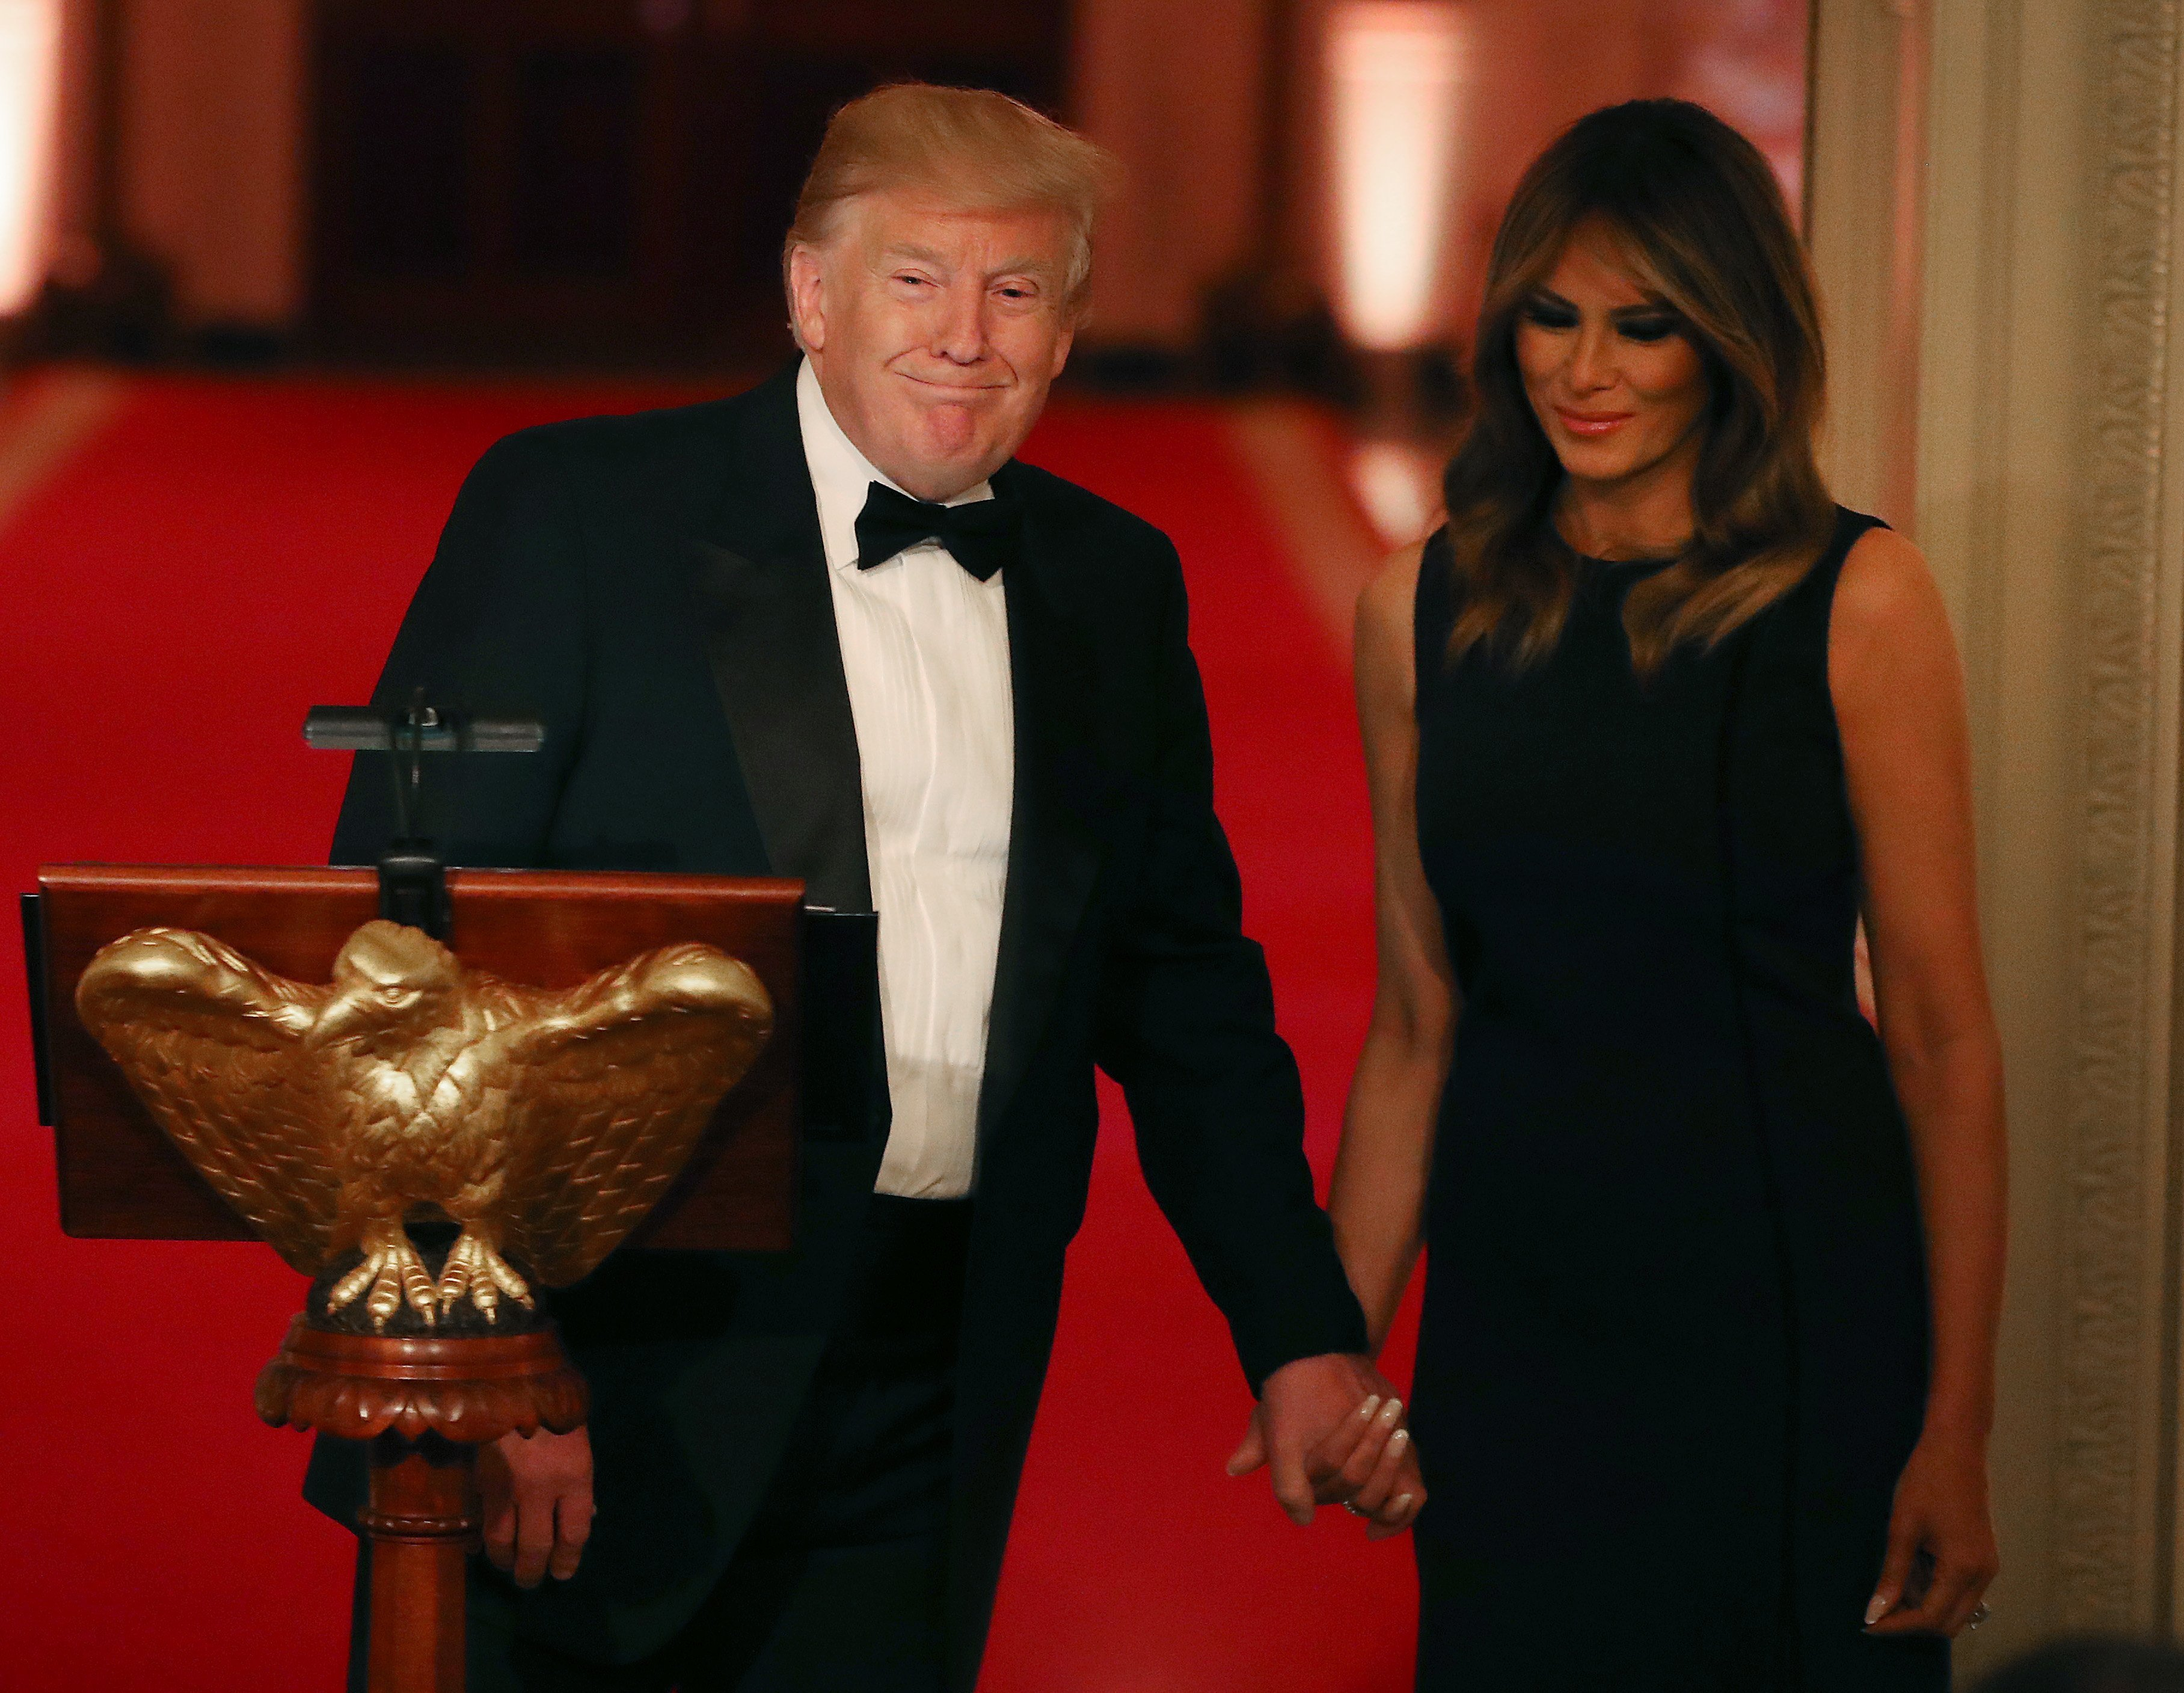 Donald Trump and Melania Trump at the White House Historical Association Dinner in the East Room of the White House | Photo: Getty Images